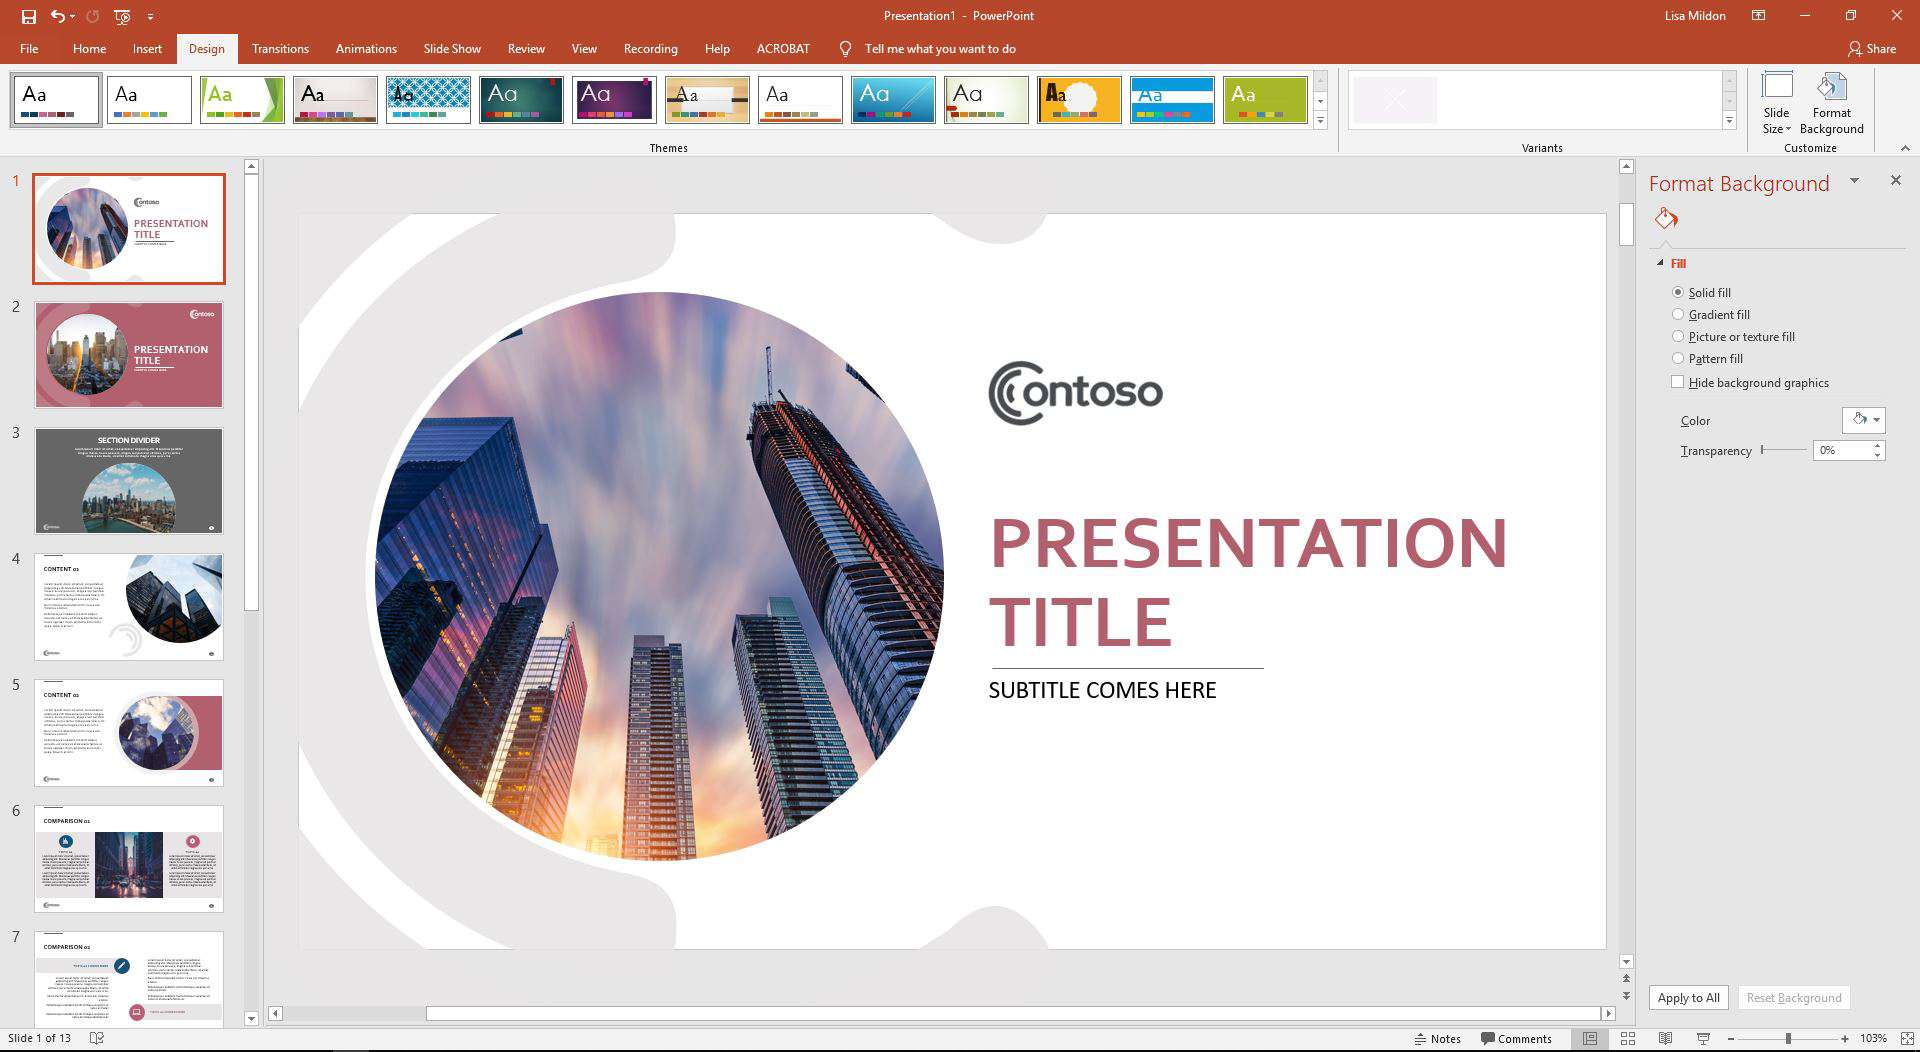 PowerPoint displaying the Format Background options.